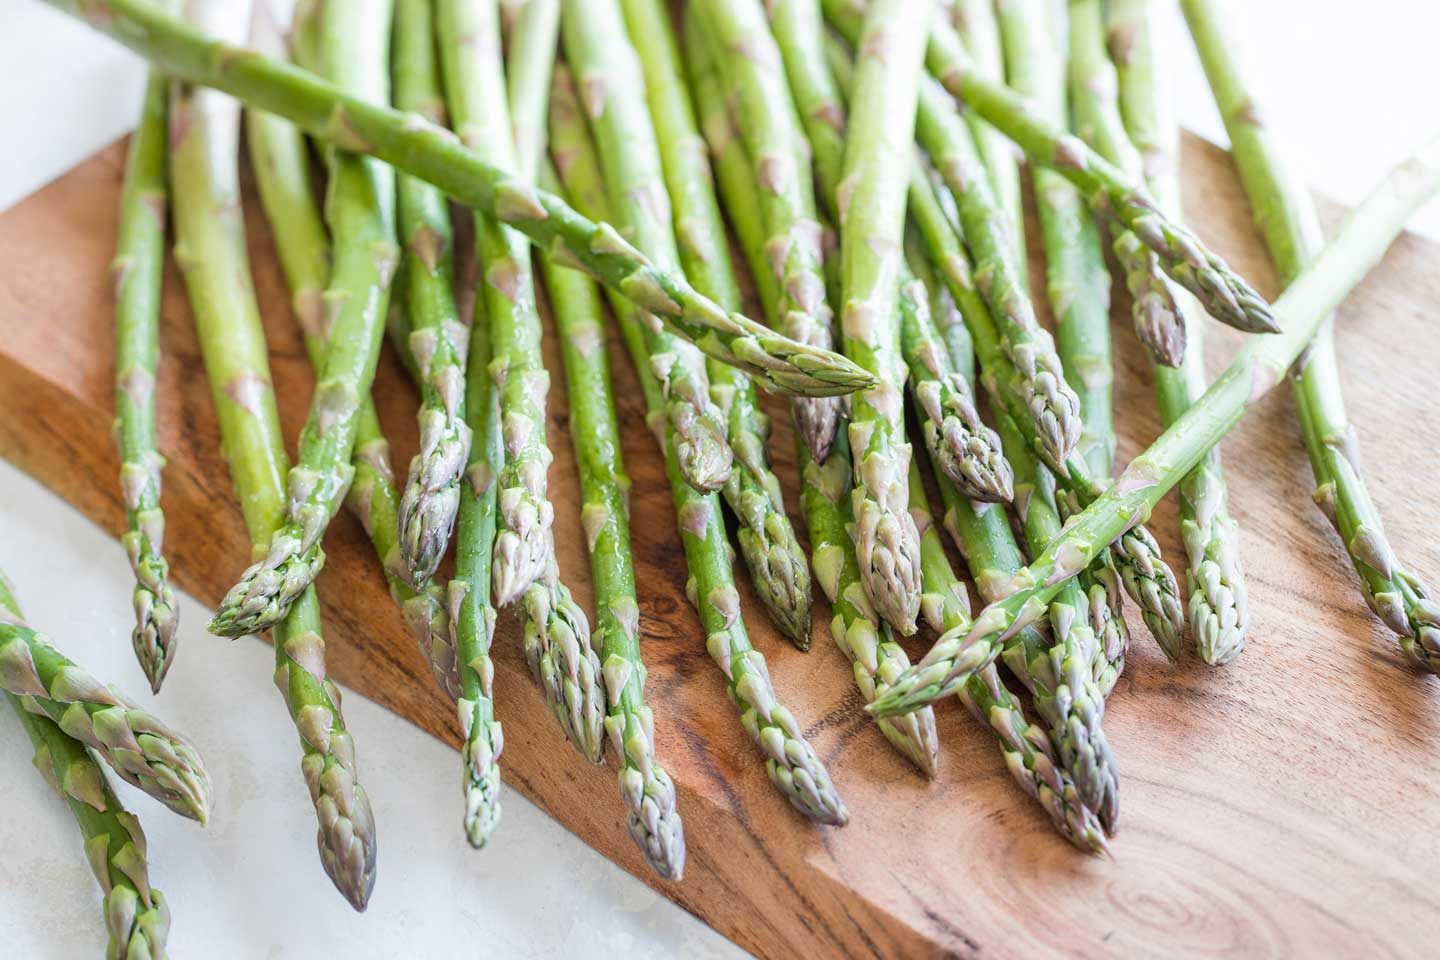 Overhead closeup of really fresh asparagus spears damp with water droplets.